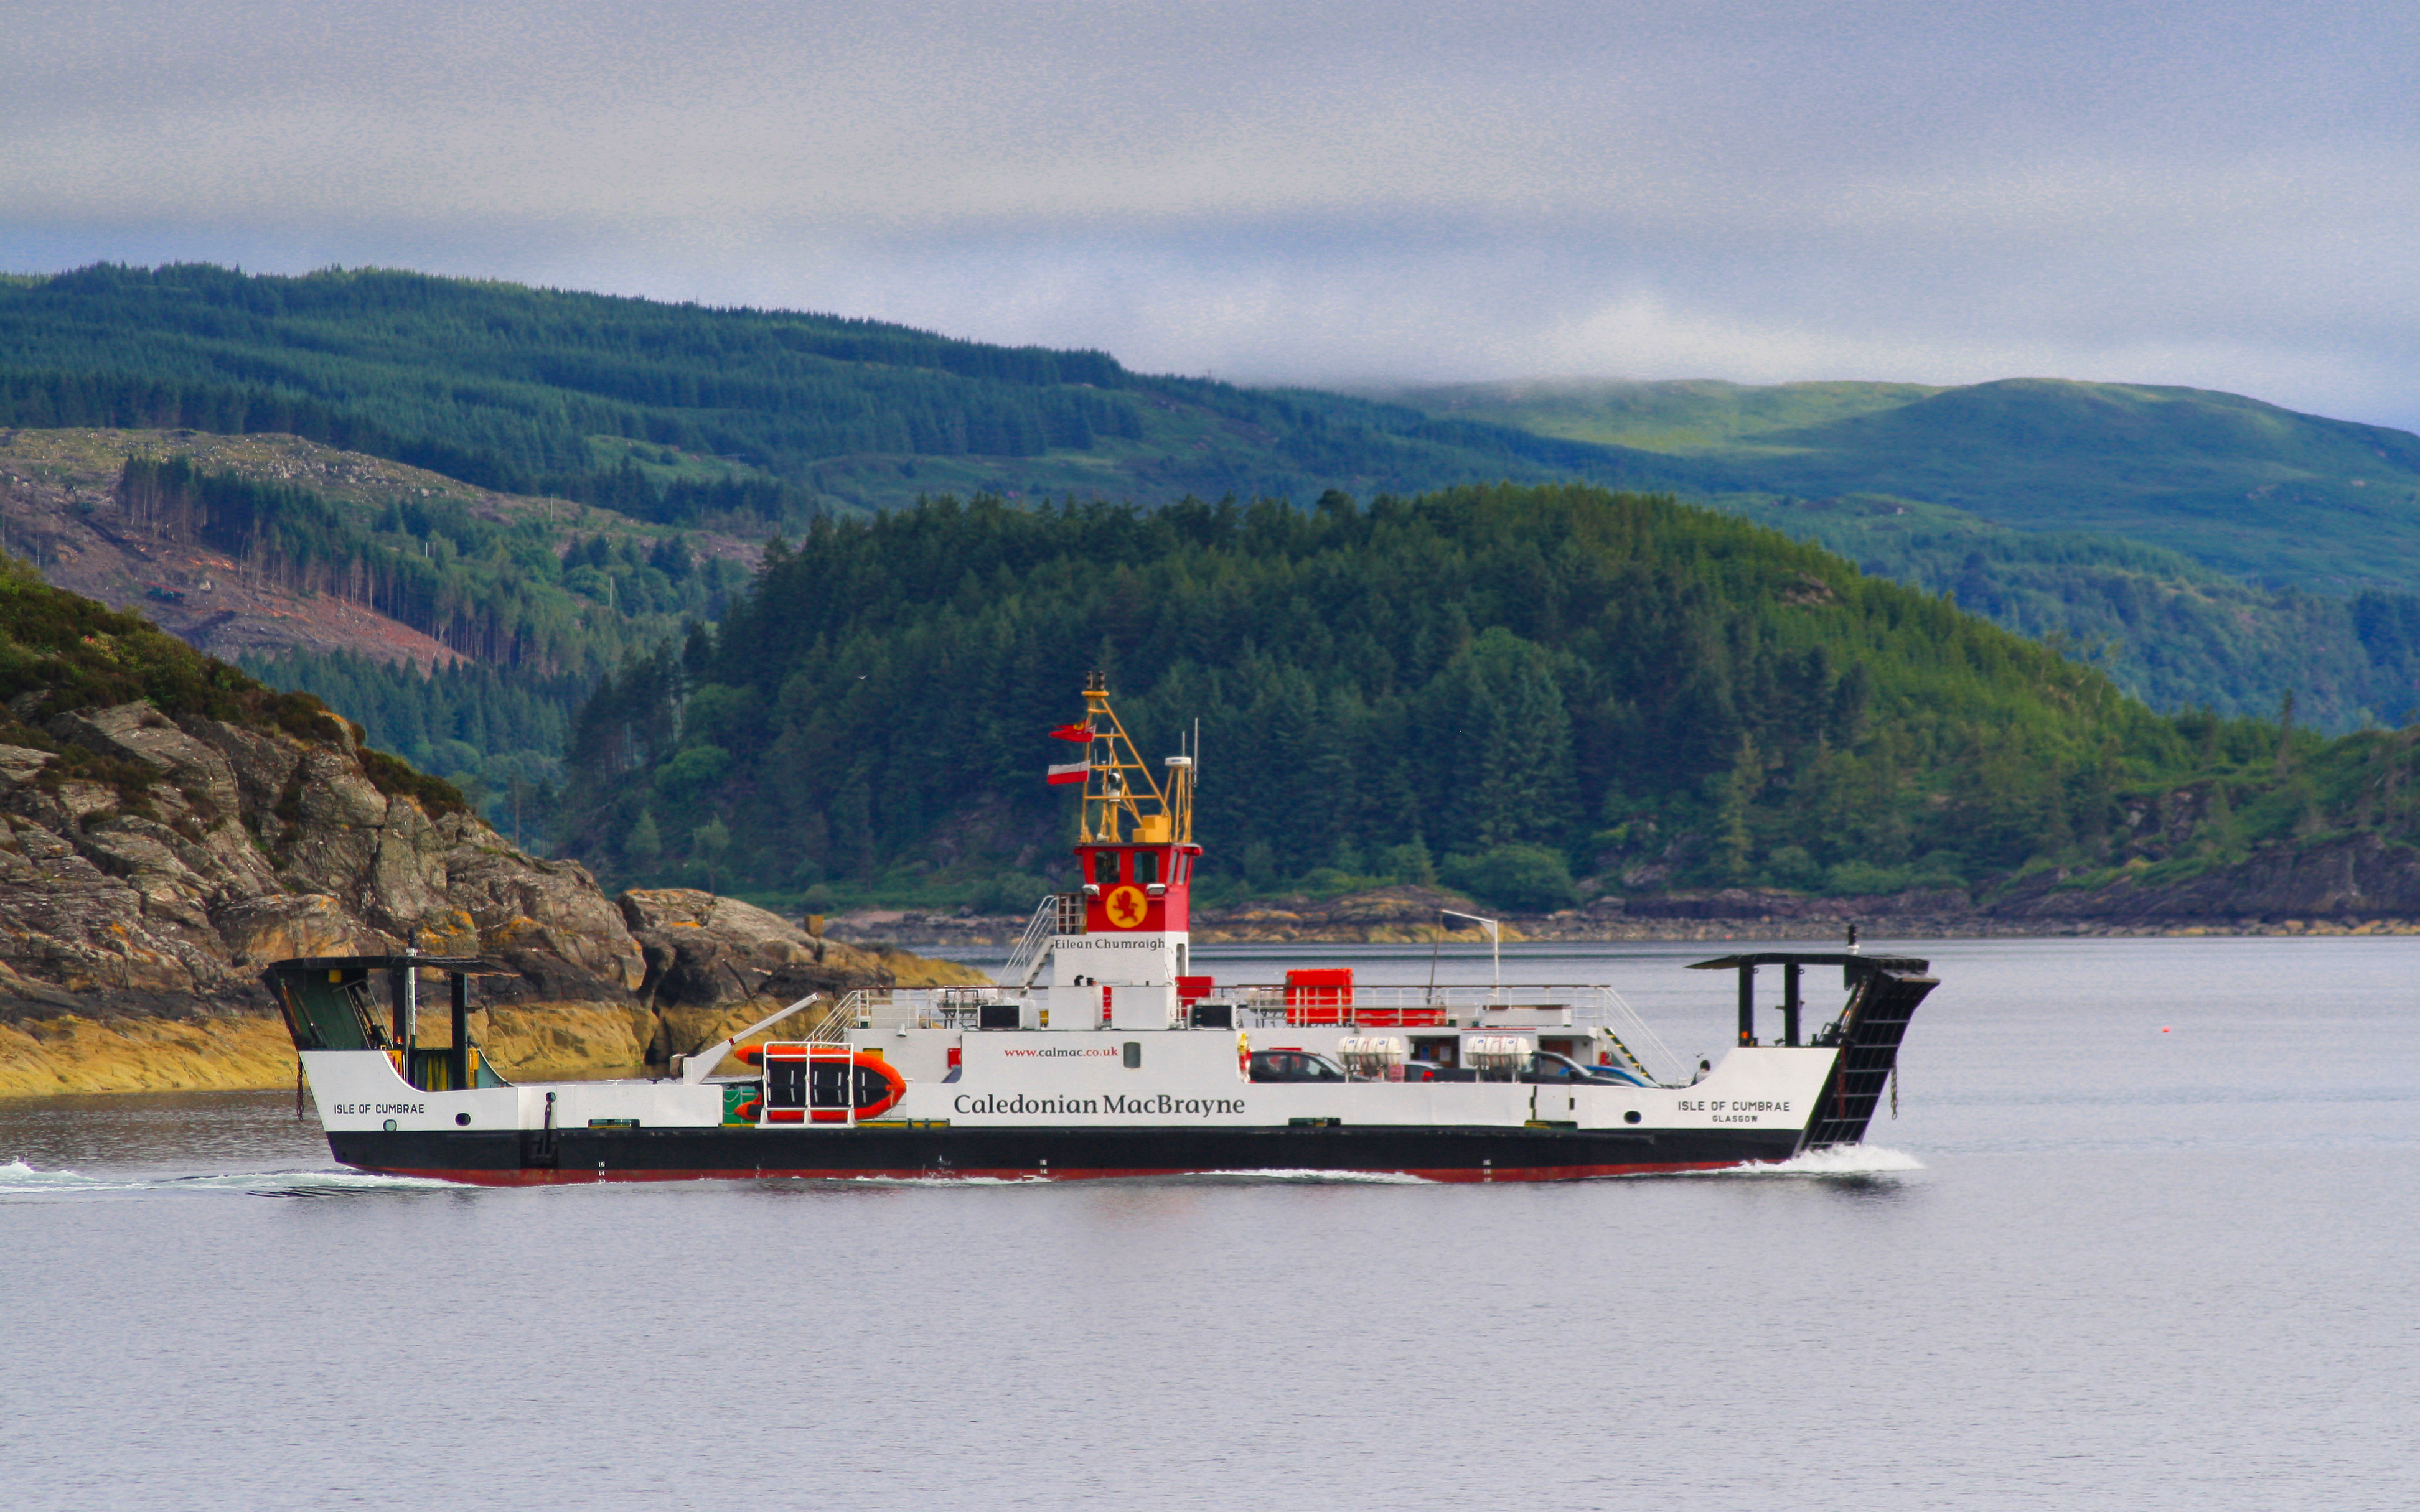 Isle of Cumbrae setting out from Tarbert (Ships of CalMac)